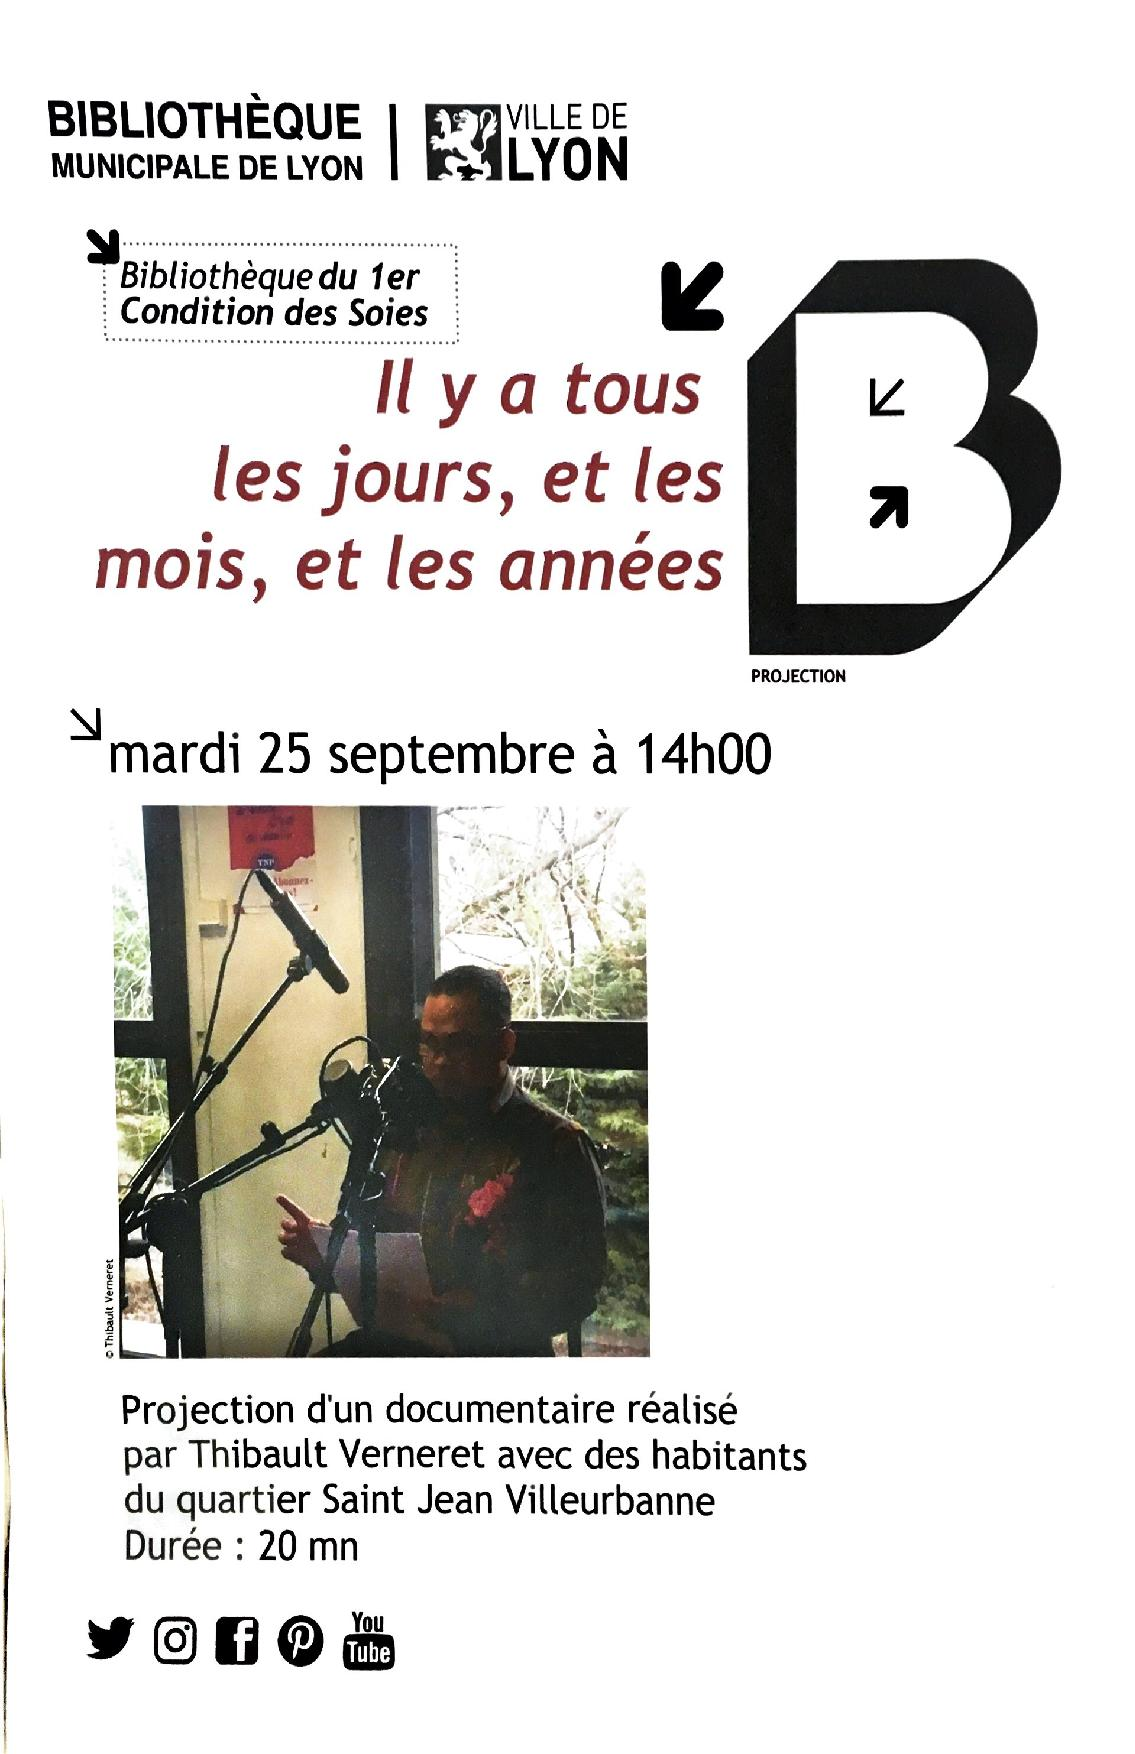 Projection docu biblio lyon page 001